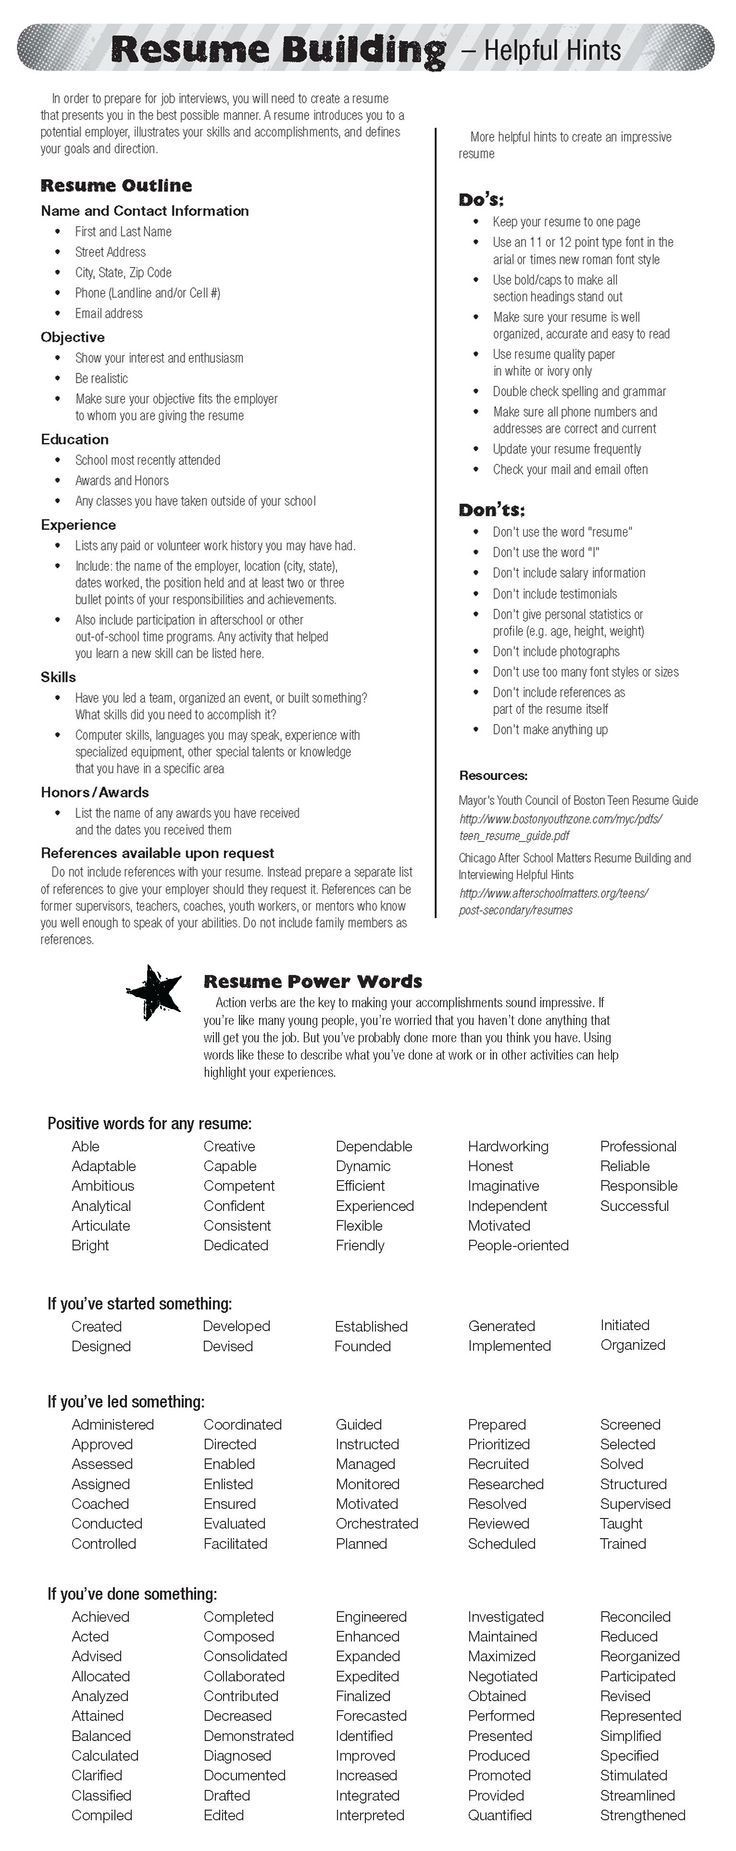 How To Make A Perfect Resume Step By Step Brilliant 27 Best Education Images On Pinterest  Gym Personal Development .